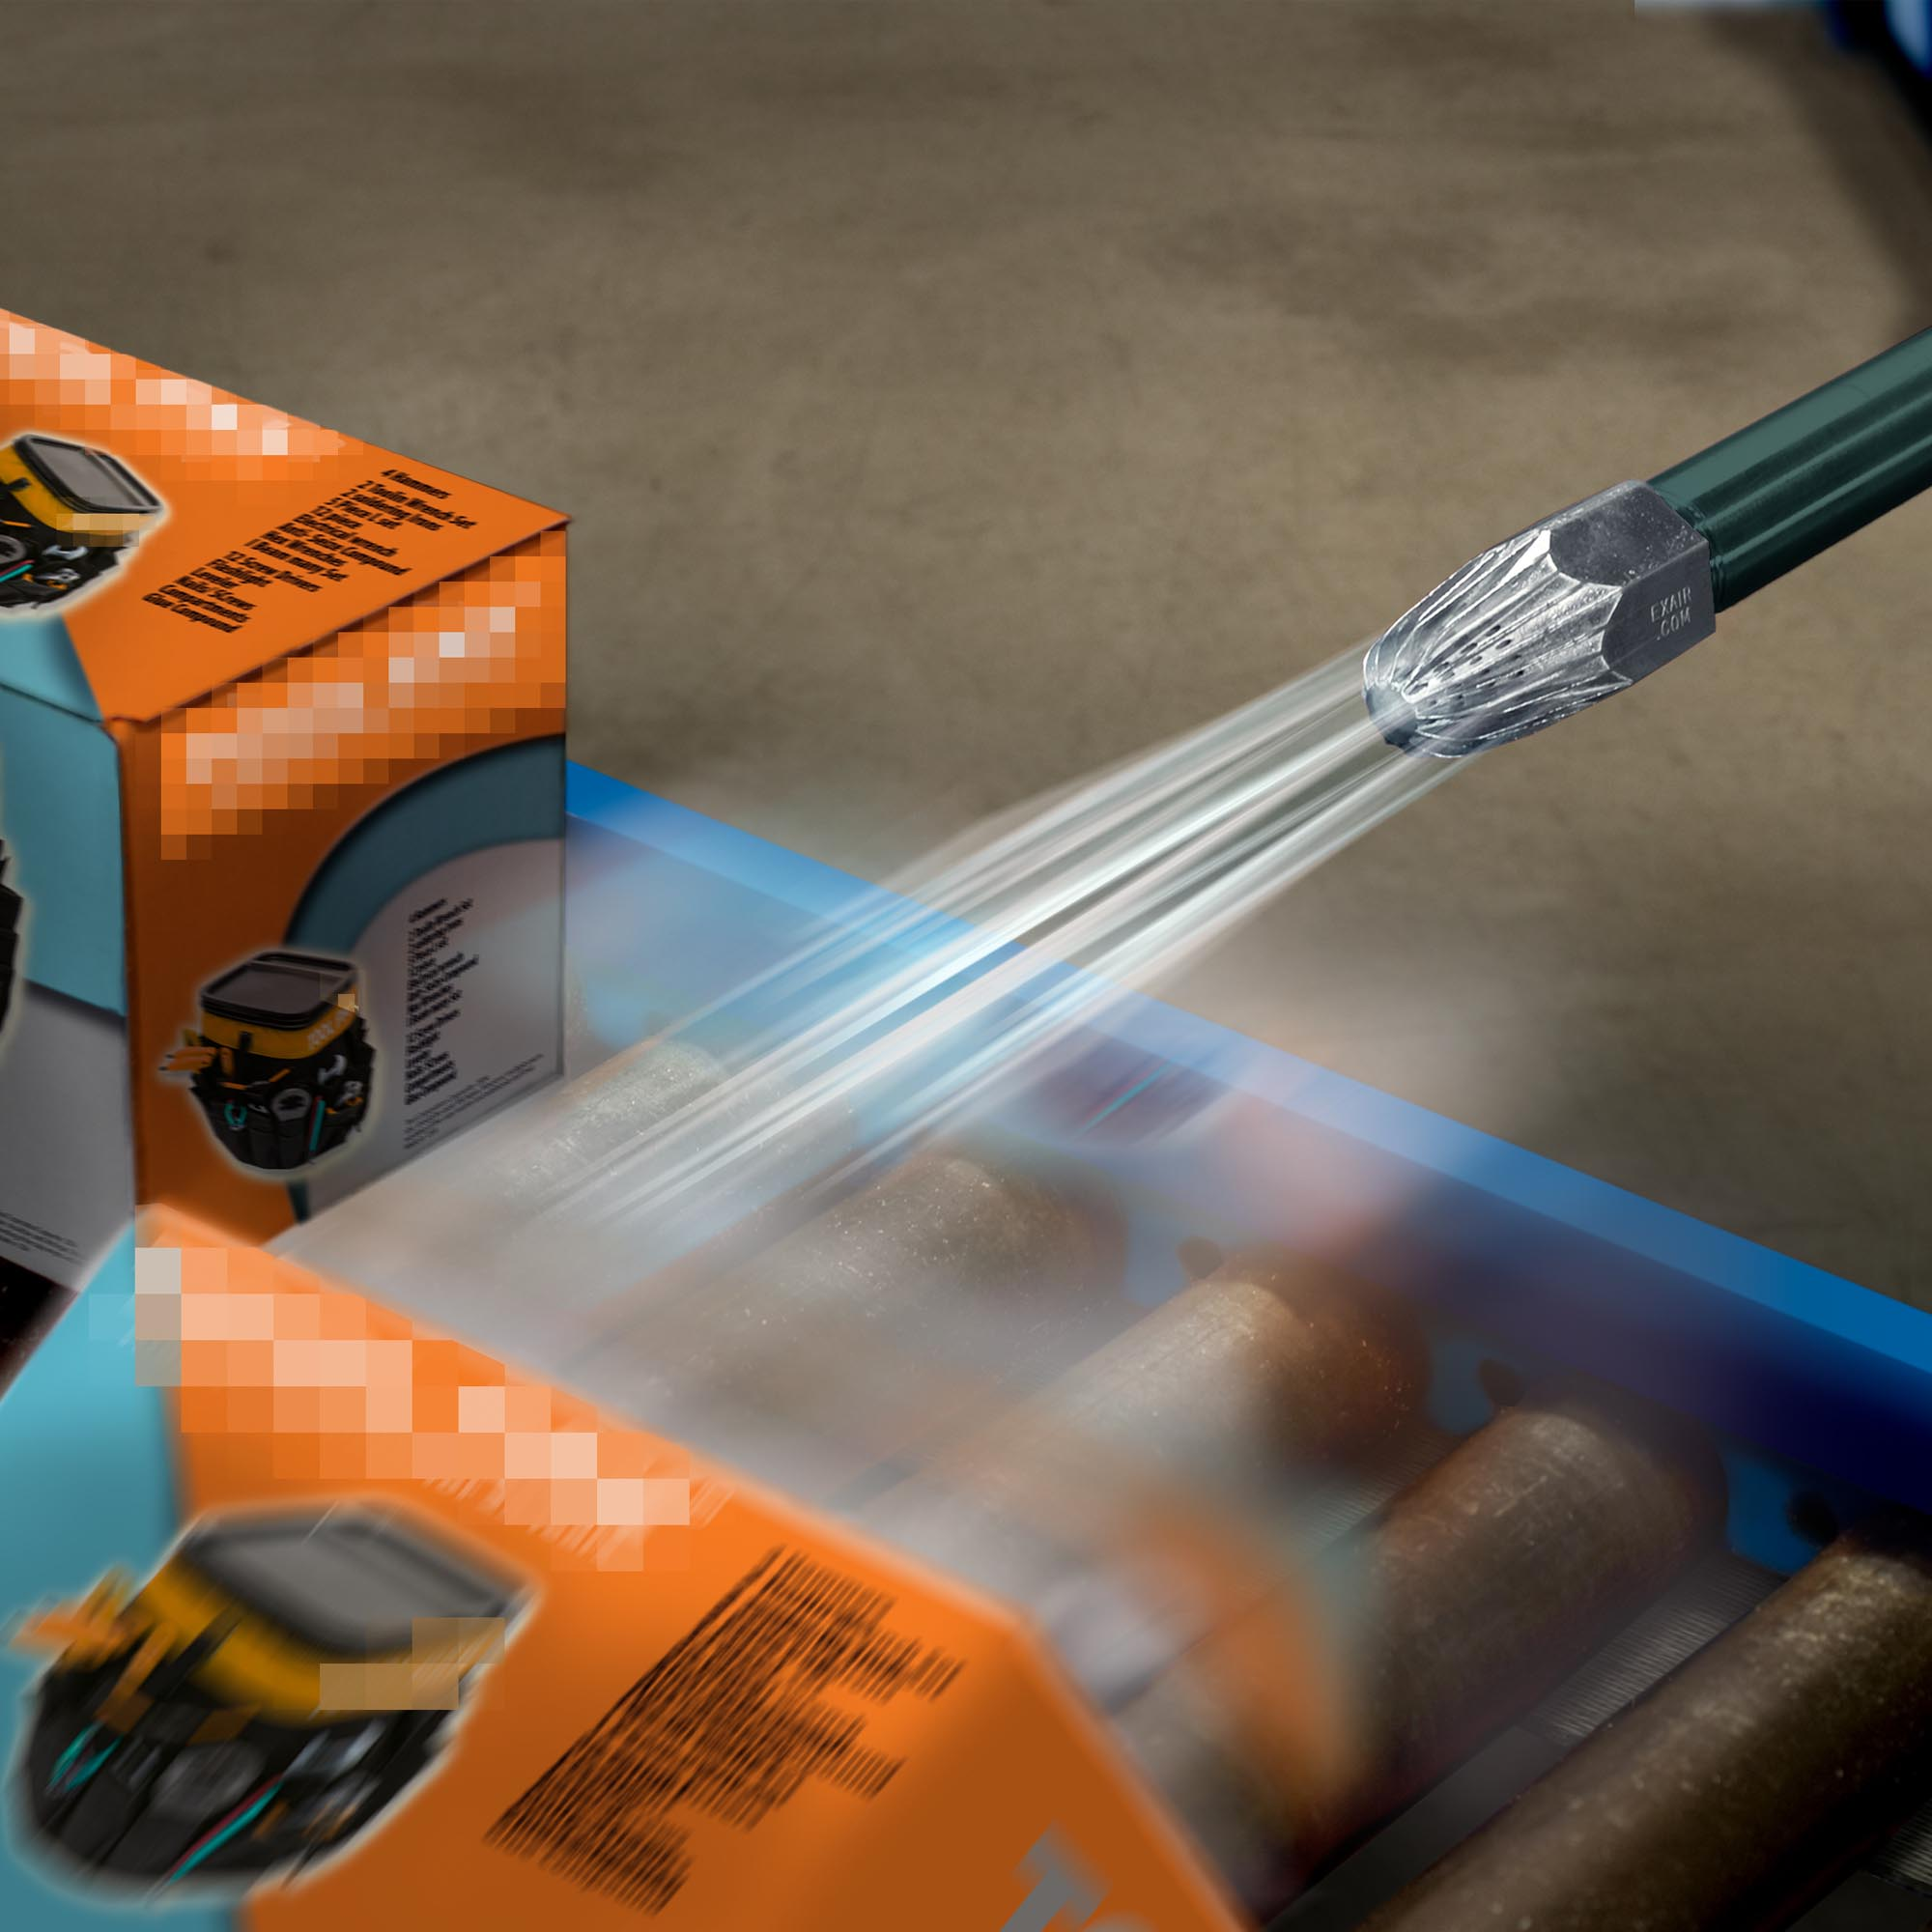 Large Super Air Nozzles provide high force values for heavy duty applications like removing products from conveyor belts